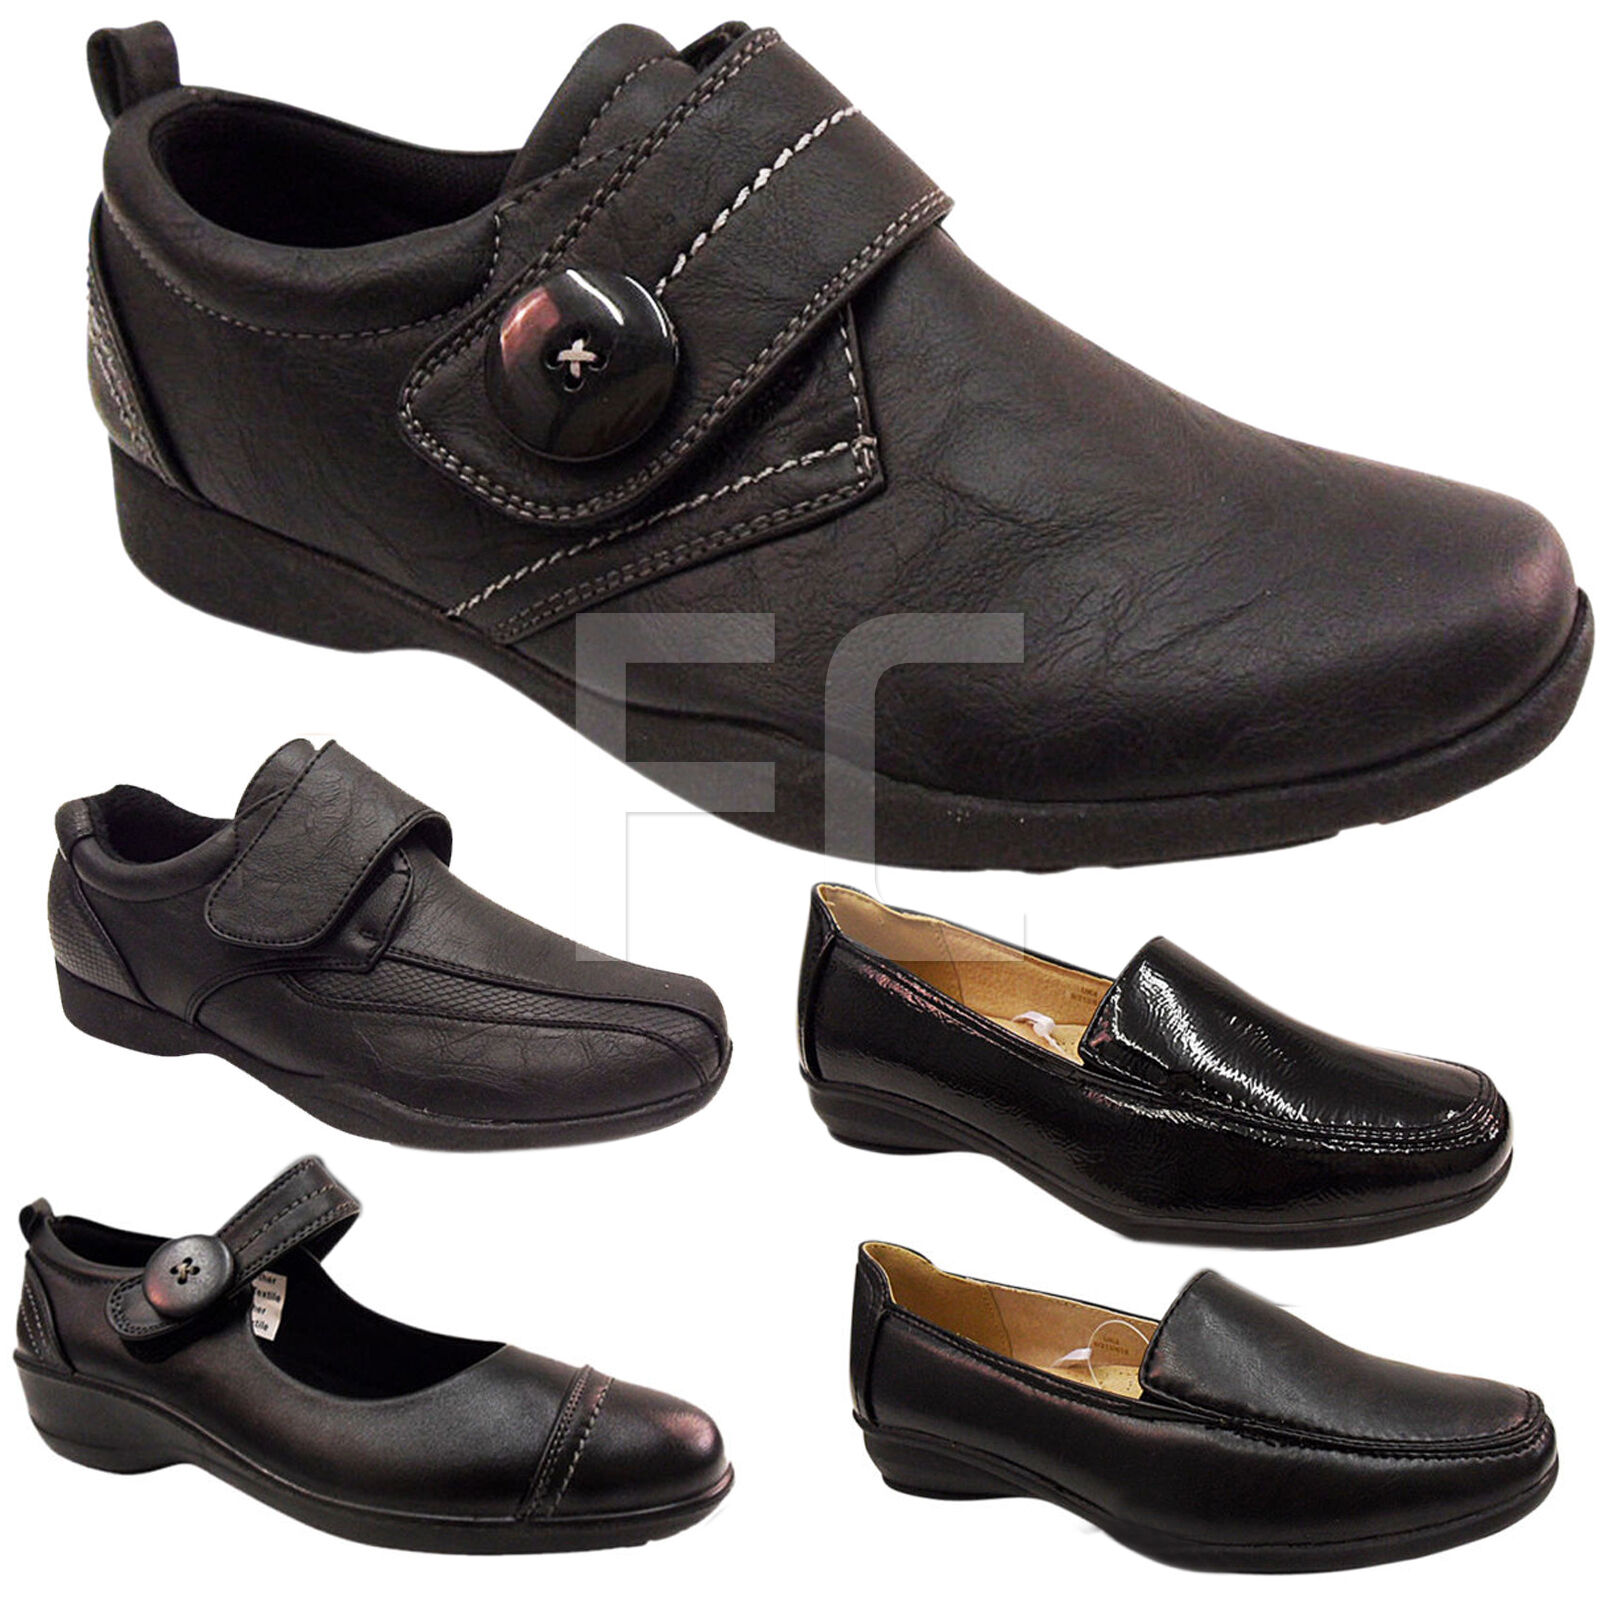 Ladies Extra Wide Shoes Canada